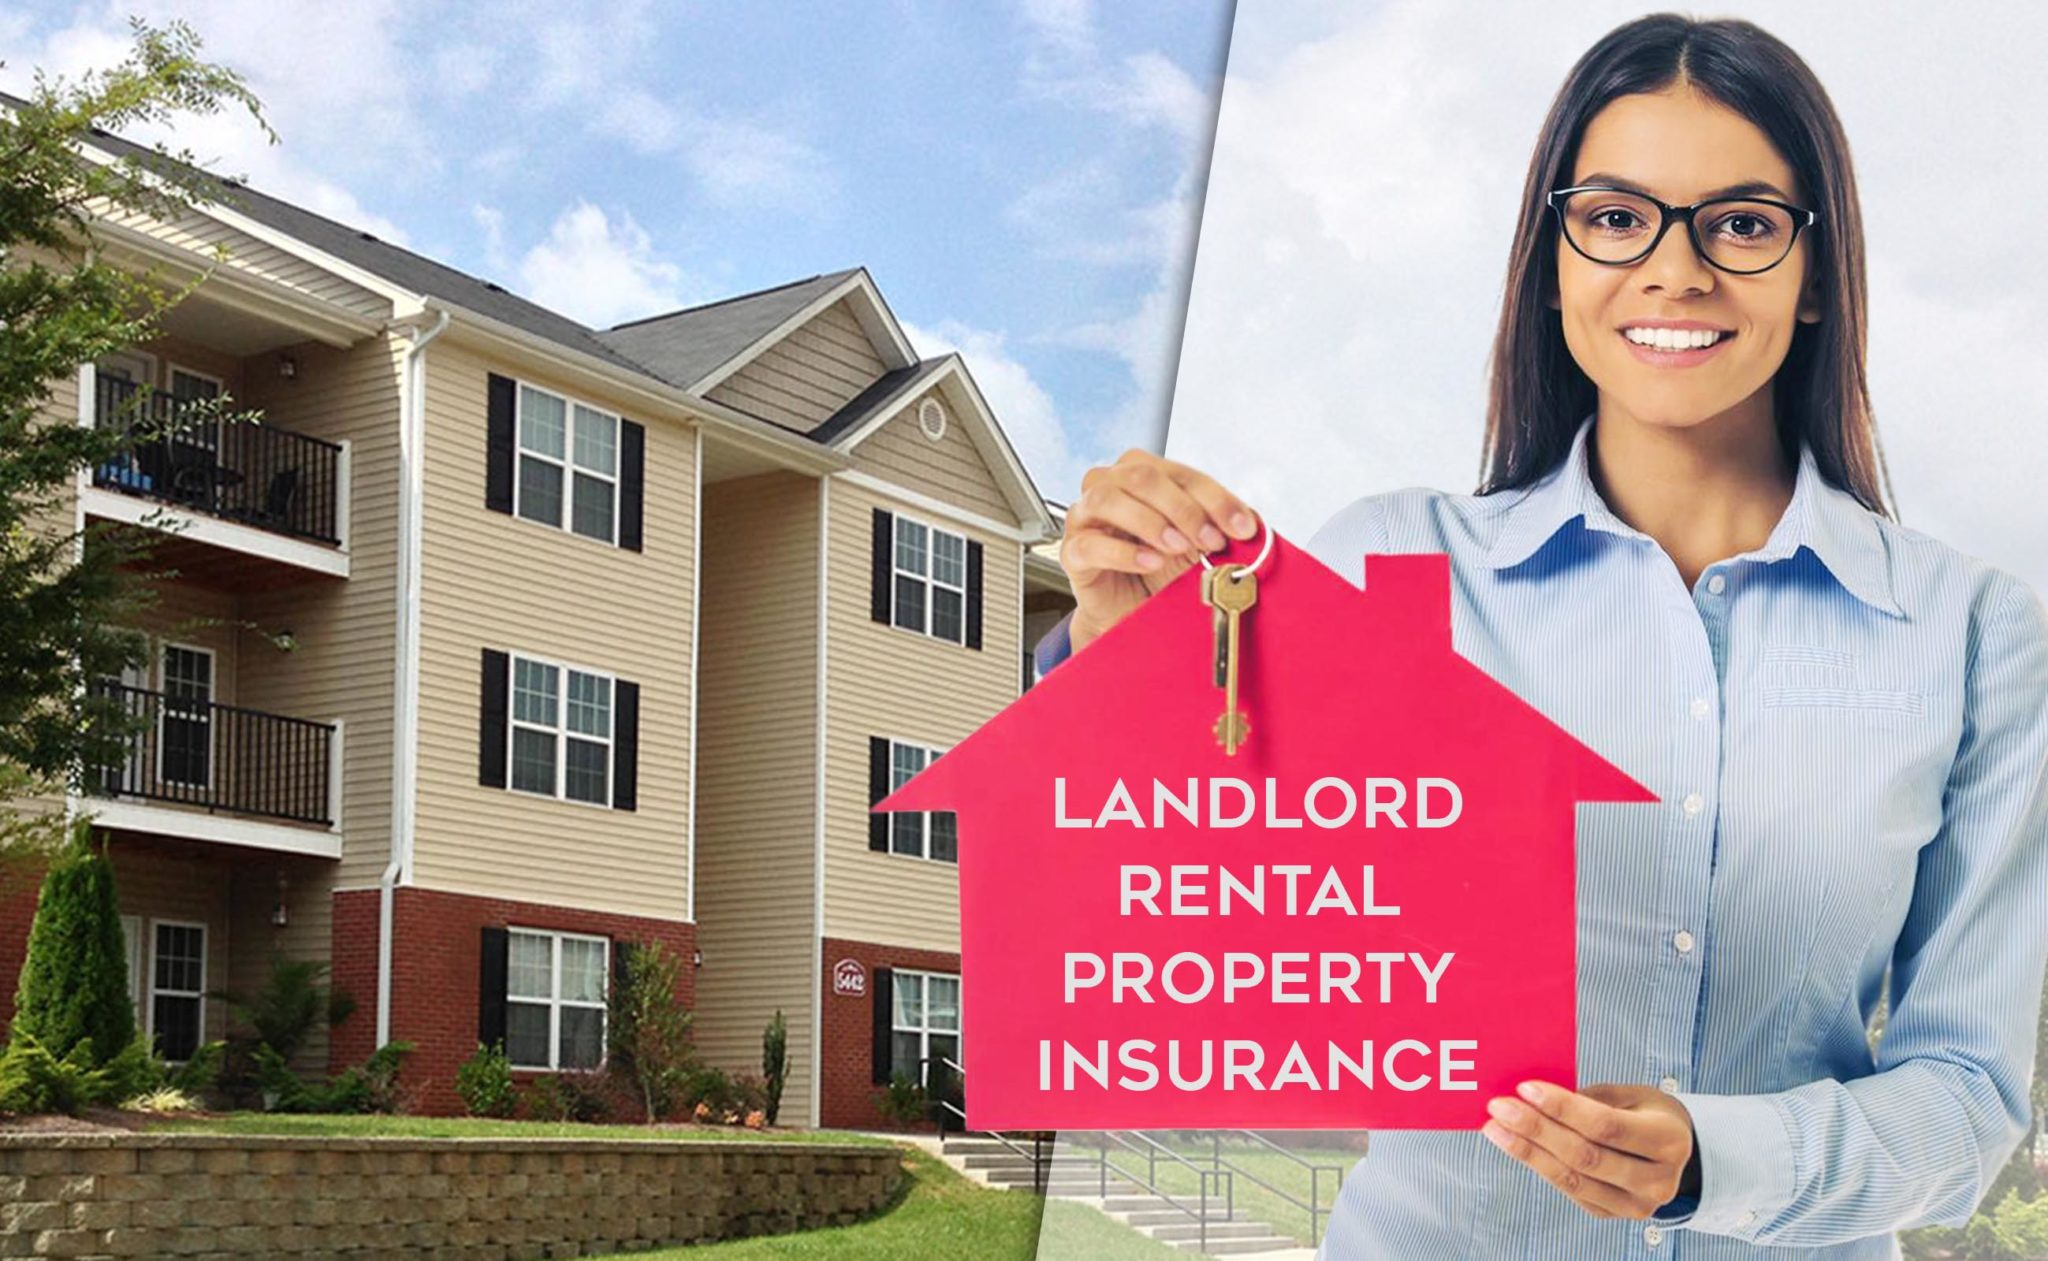 Landlord Insurance Quote Landlord Insurance  Rental Property Coverage Florida  Diverse